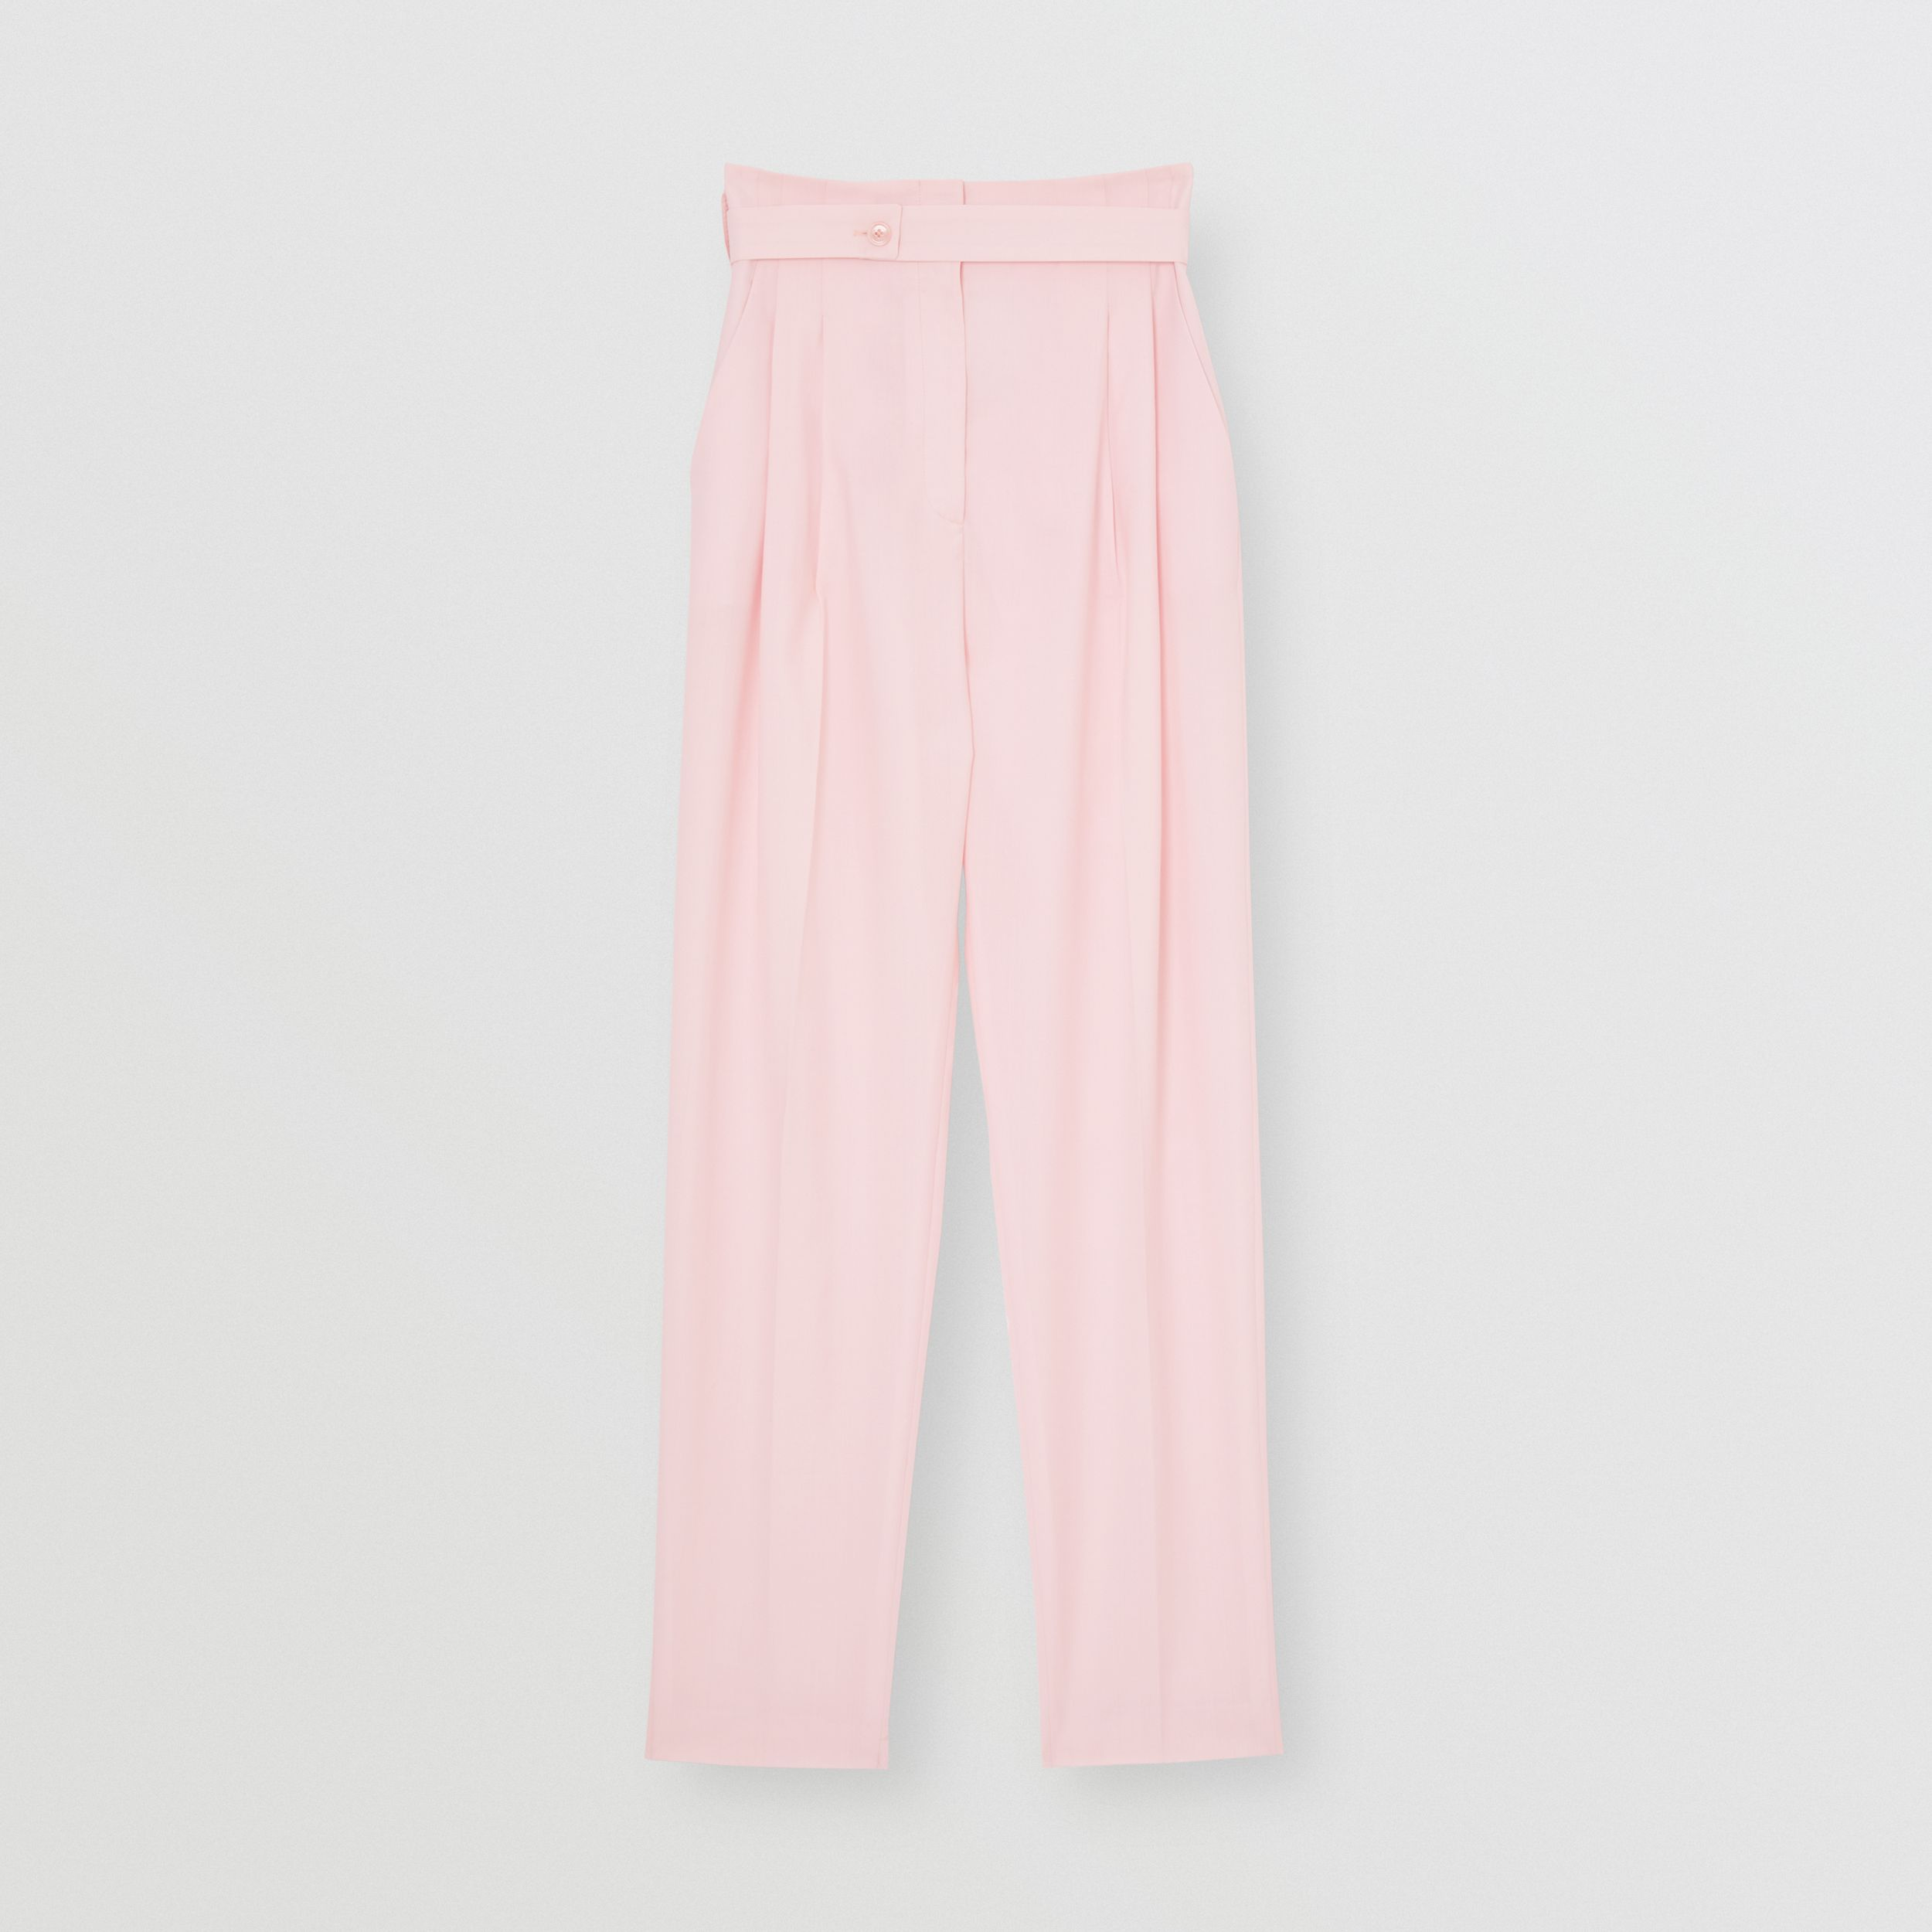 Cut-out Detail Wool Canvas Tailored Trousers in Pastel Pink - Women | Burberry Singapore - 1